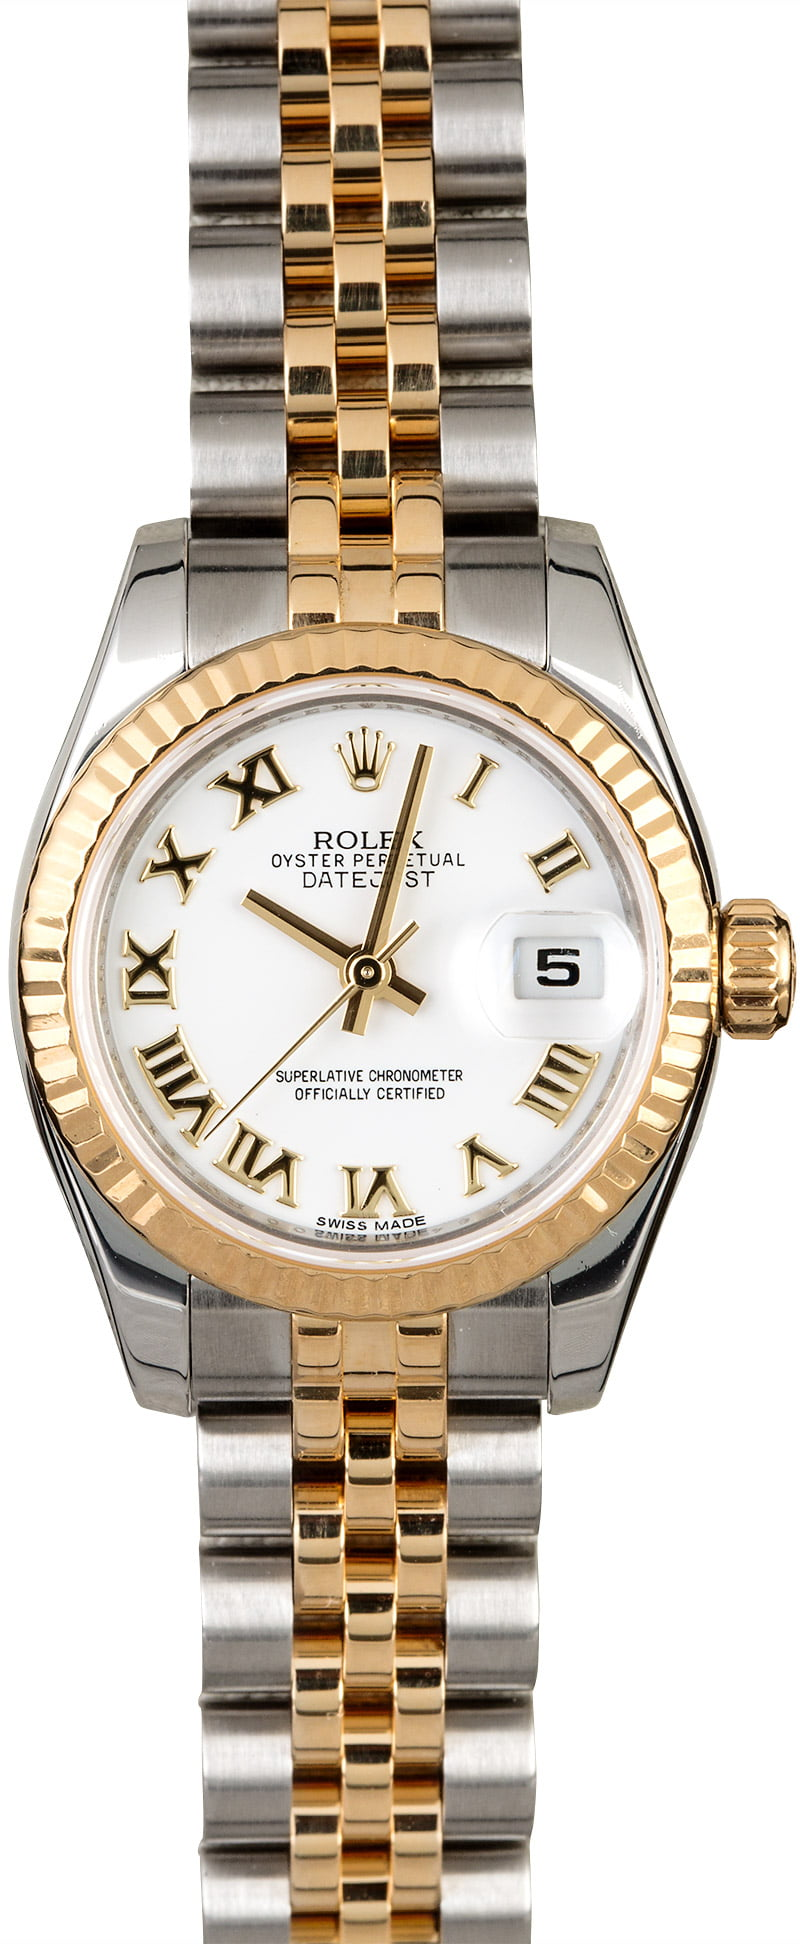 Rolex Used 2- Tone Datejust Ladies 26mm with Yellow Gold Fluted Bezel